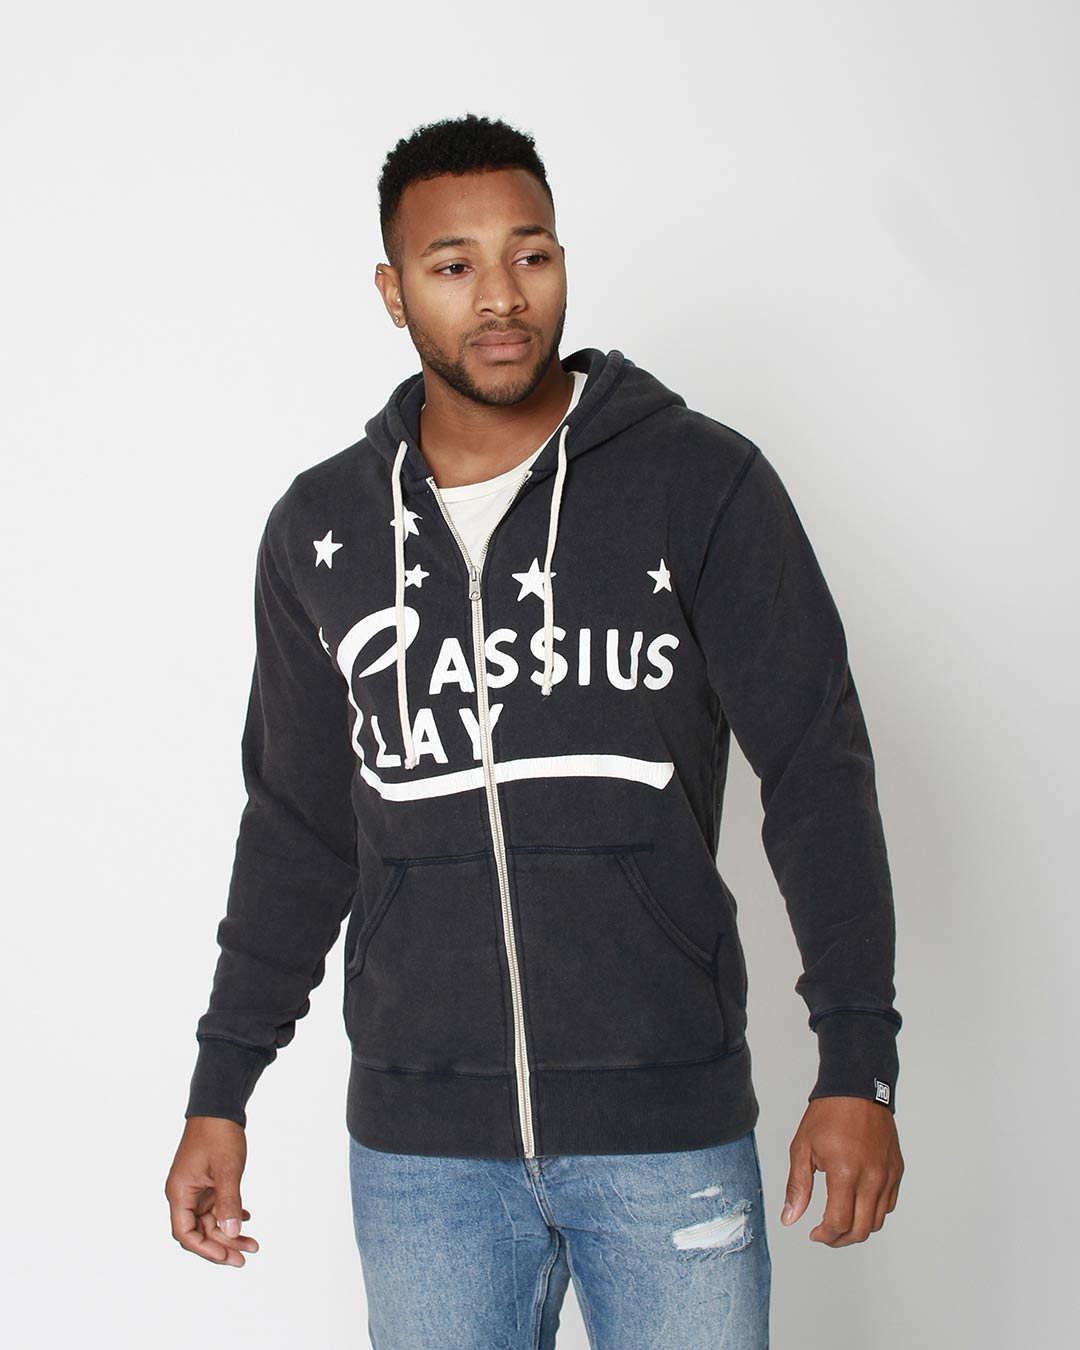 Cassius Clay FZ Hoody - Roots of Inc dba Roots of Fight